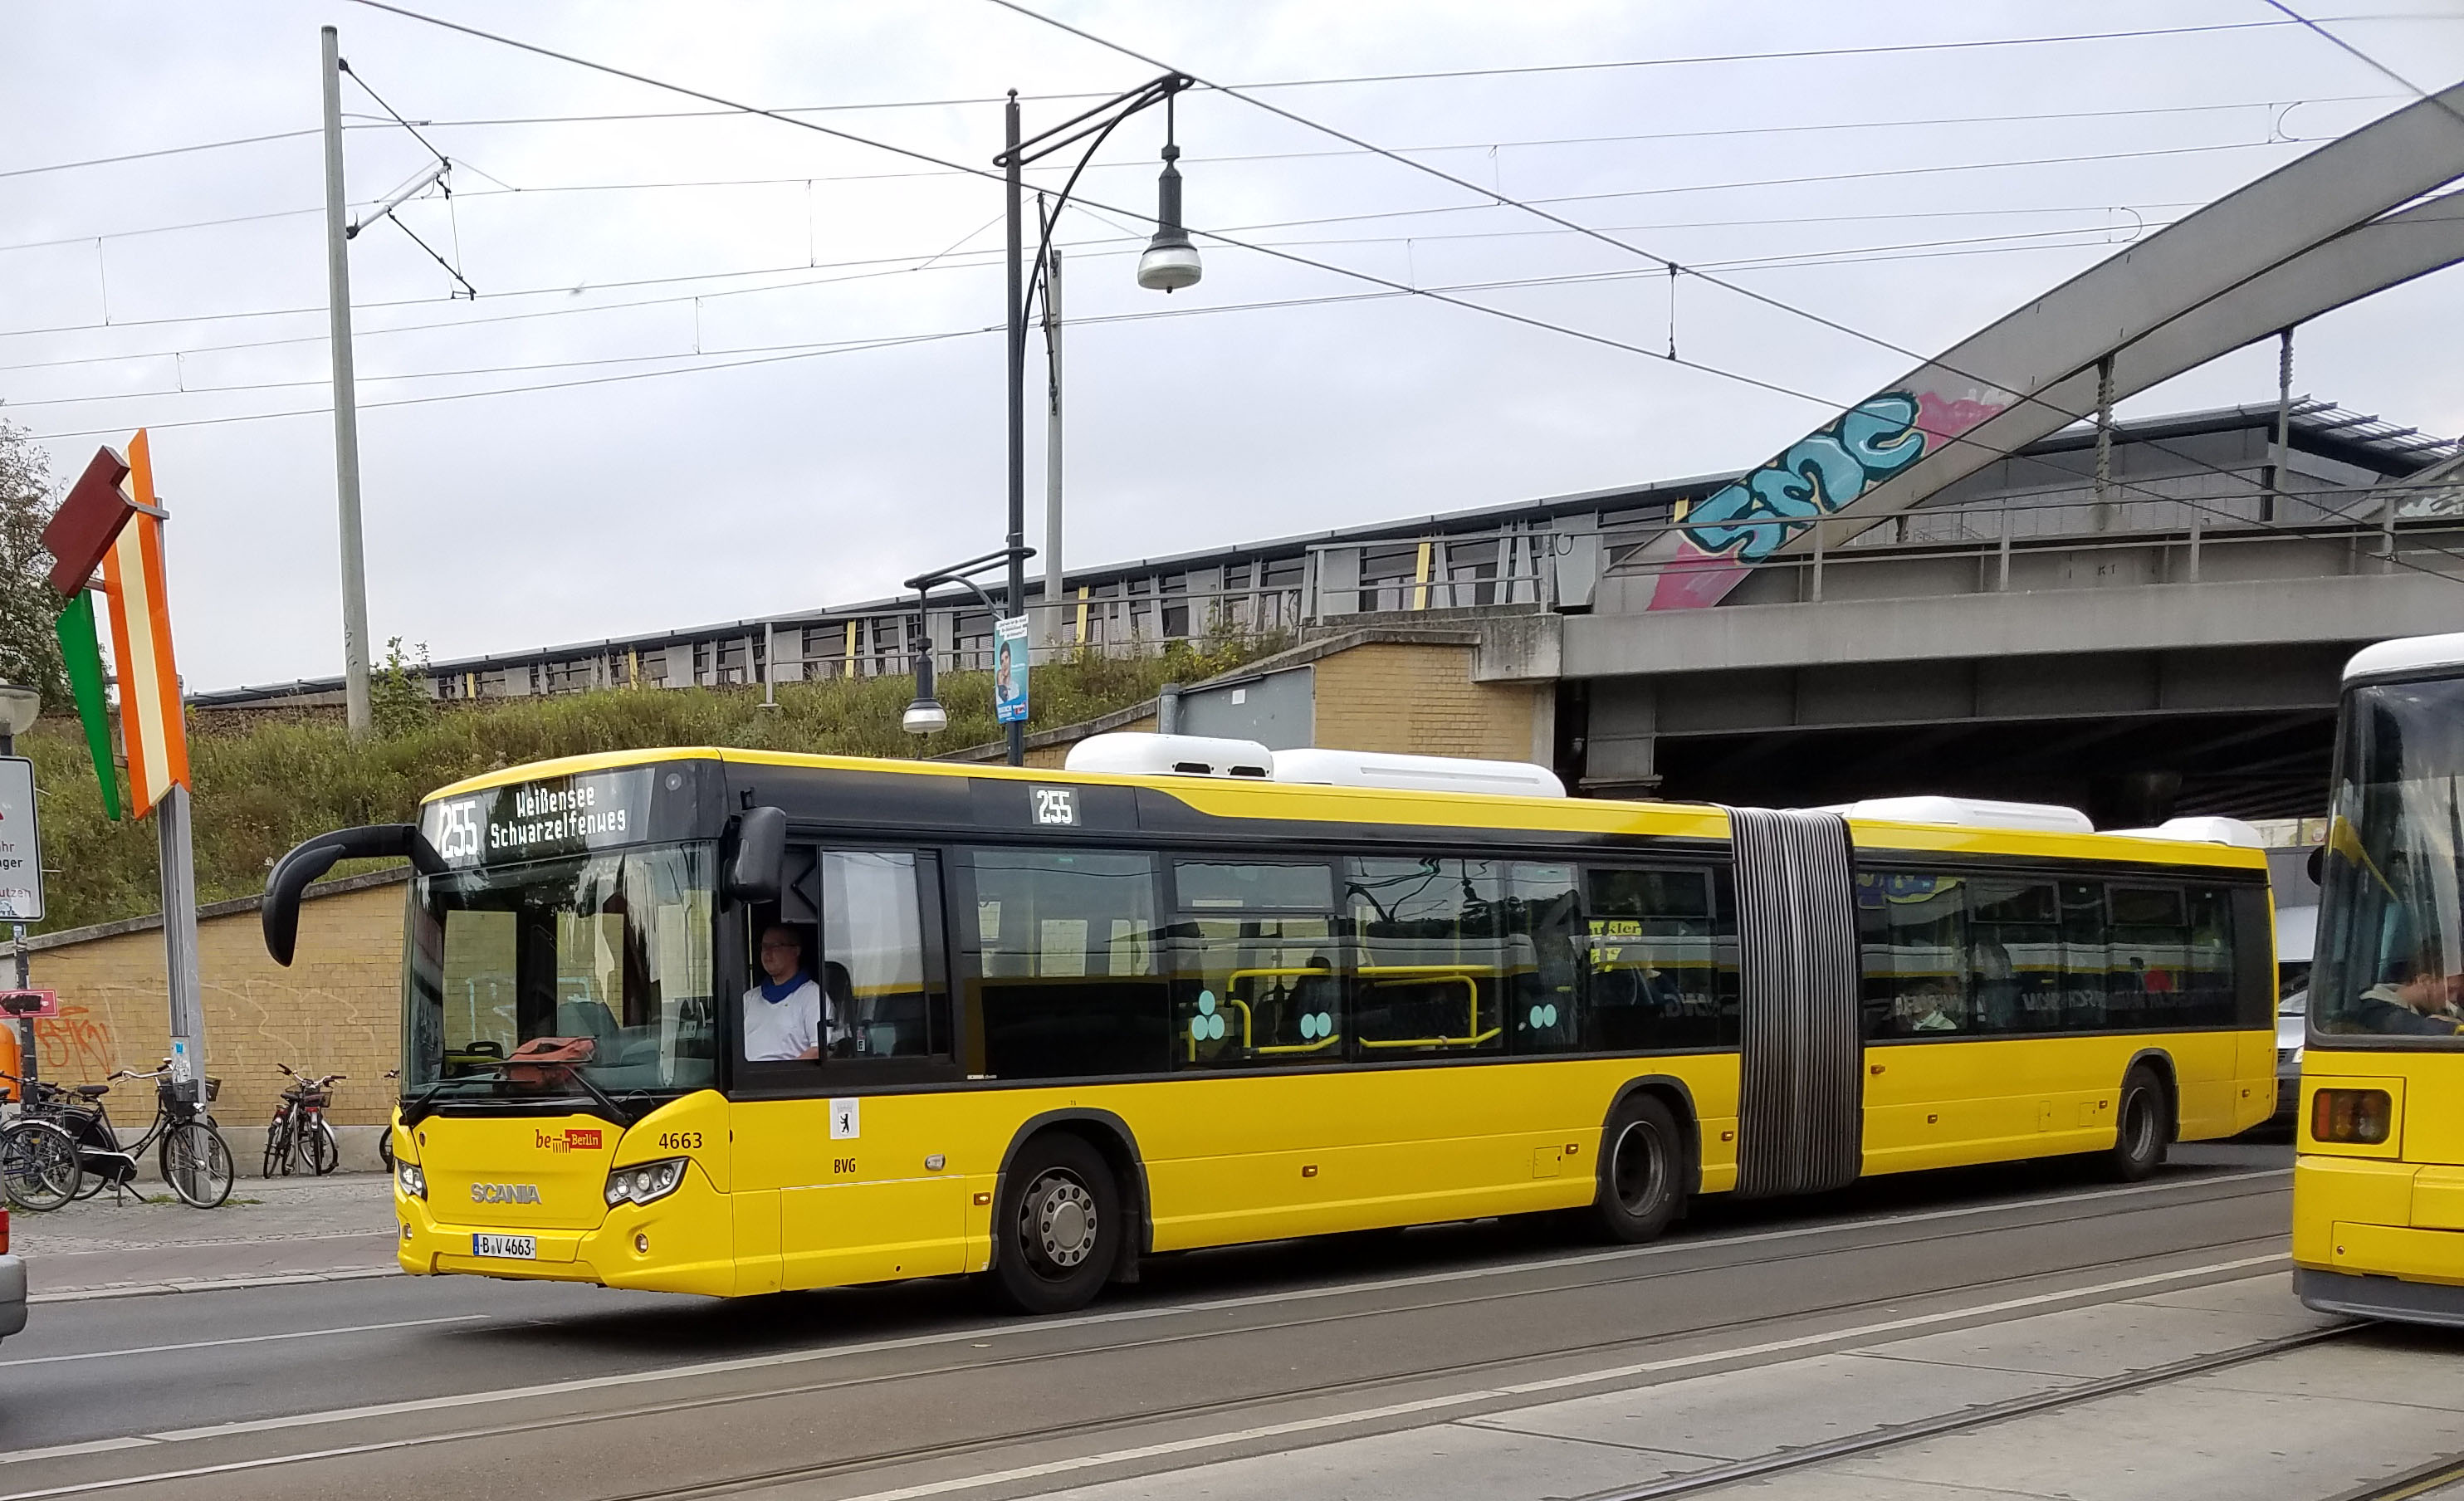 Foto: Bus 4663, Gelenkbus Typ Scania Citywide LFA, Berlin-Pankow, September 2017